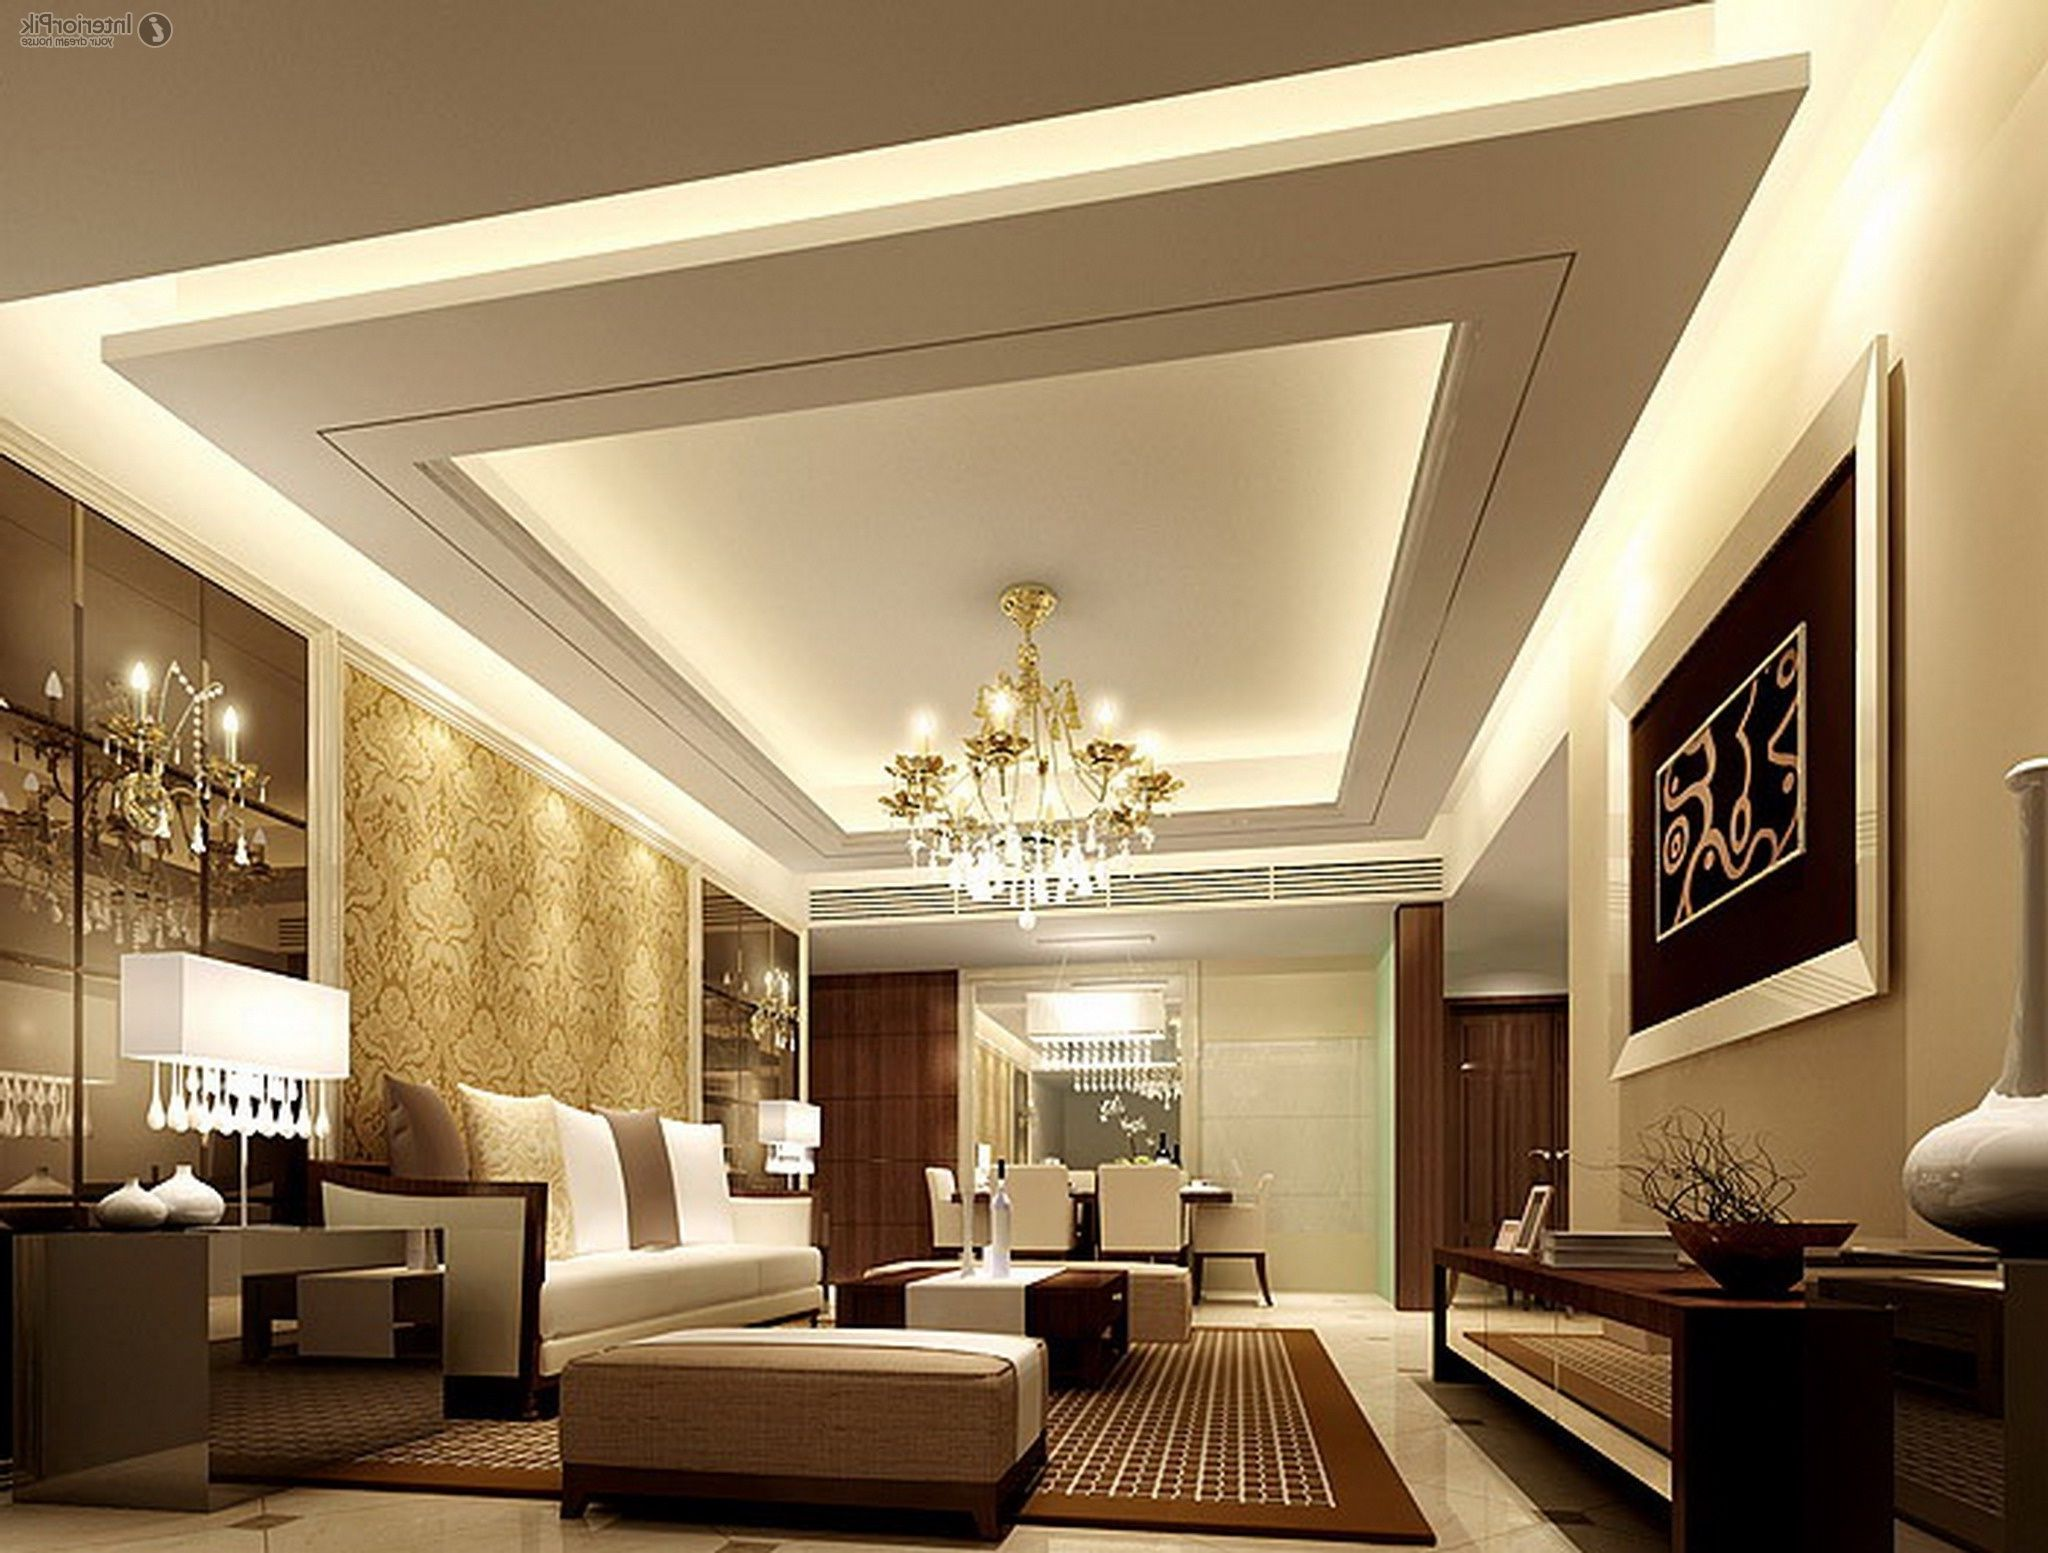 Pin By Mayur Patle On Mayur Bedroom False Ceiling Design